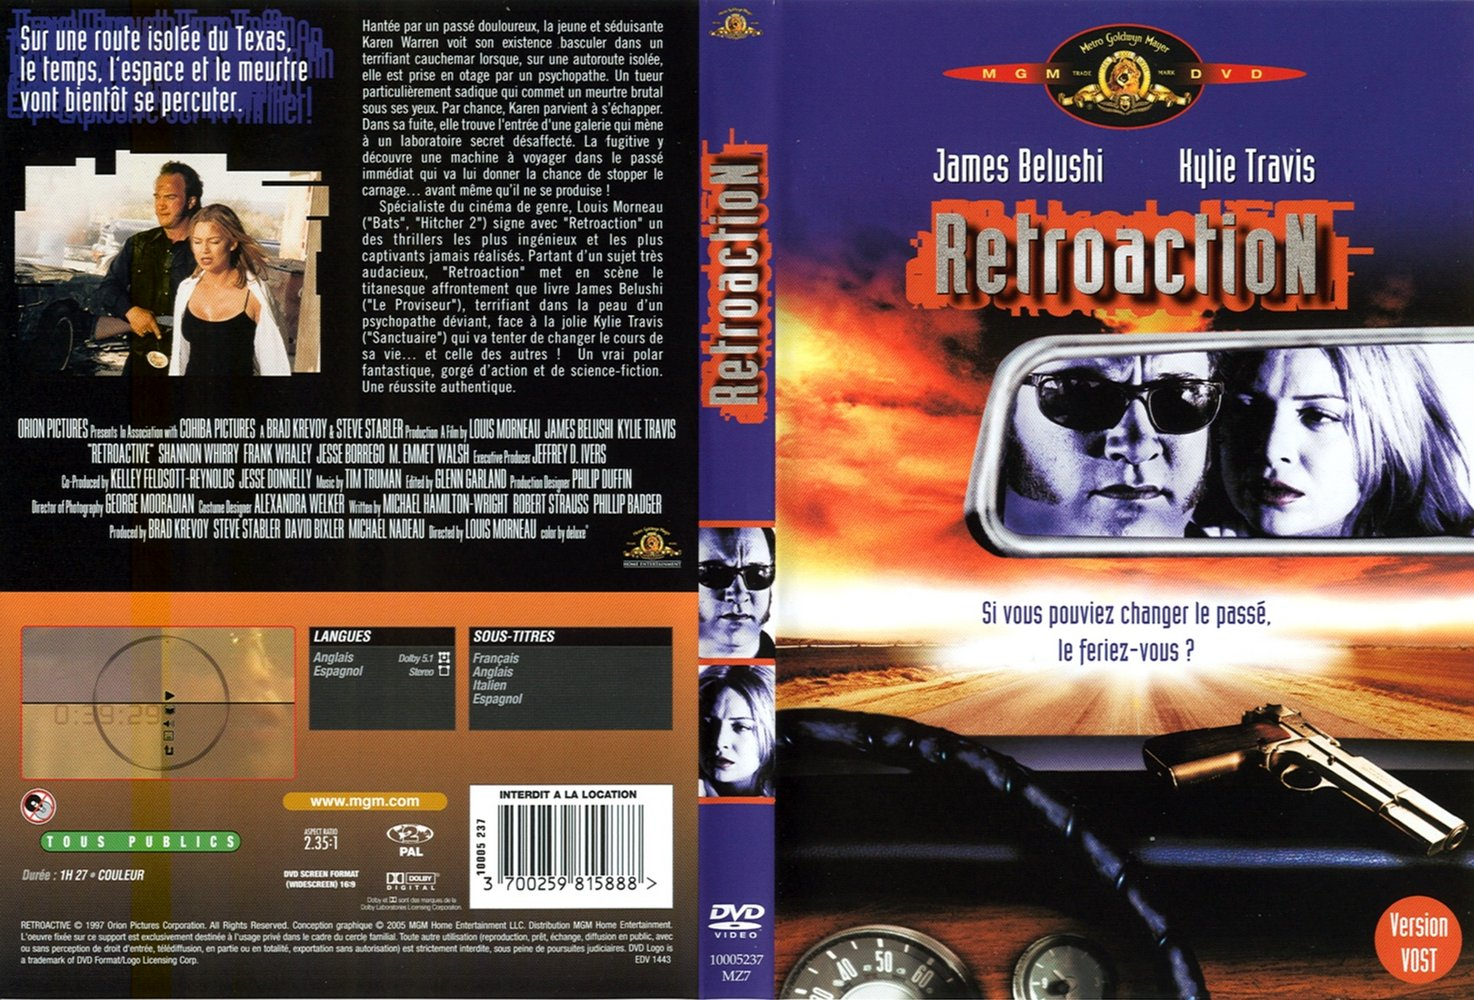 Capa DVD Retroaction